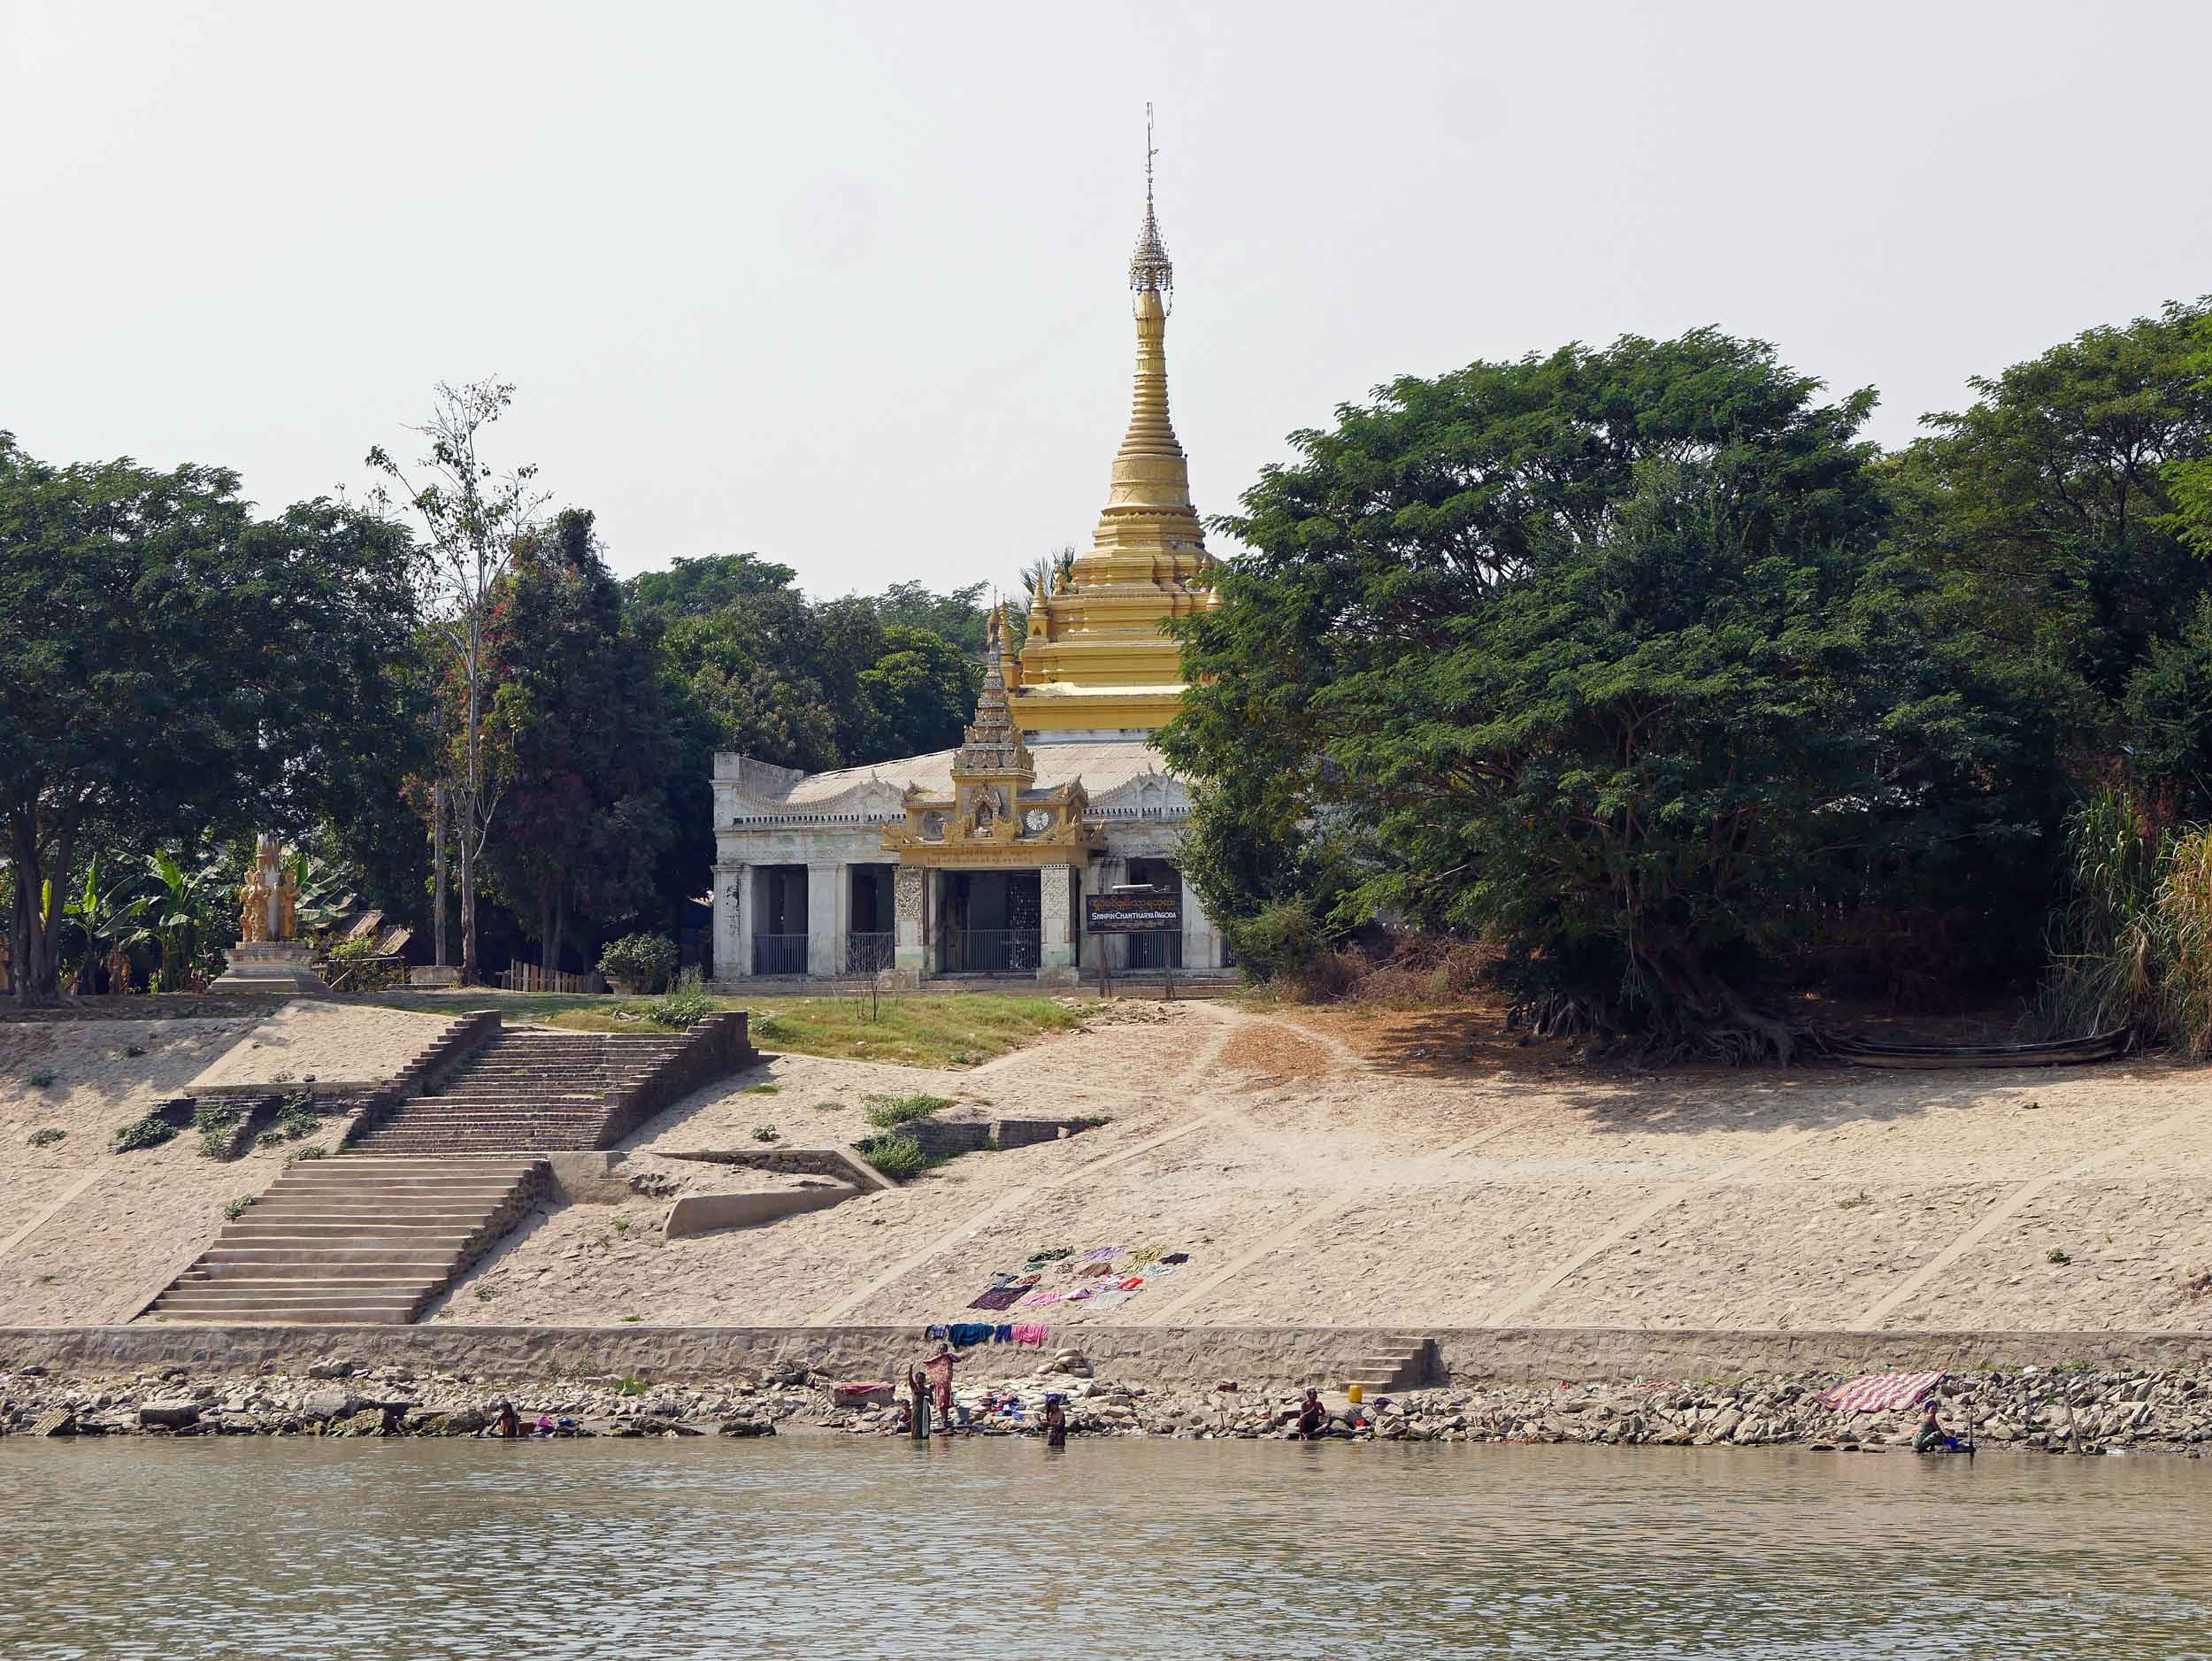 Many glittering pagodas dot the shoreline and hills along the River (Feb 17).